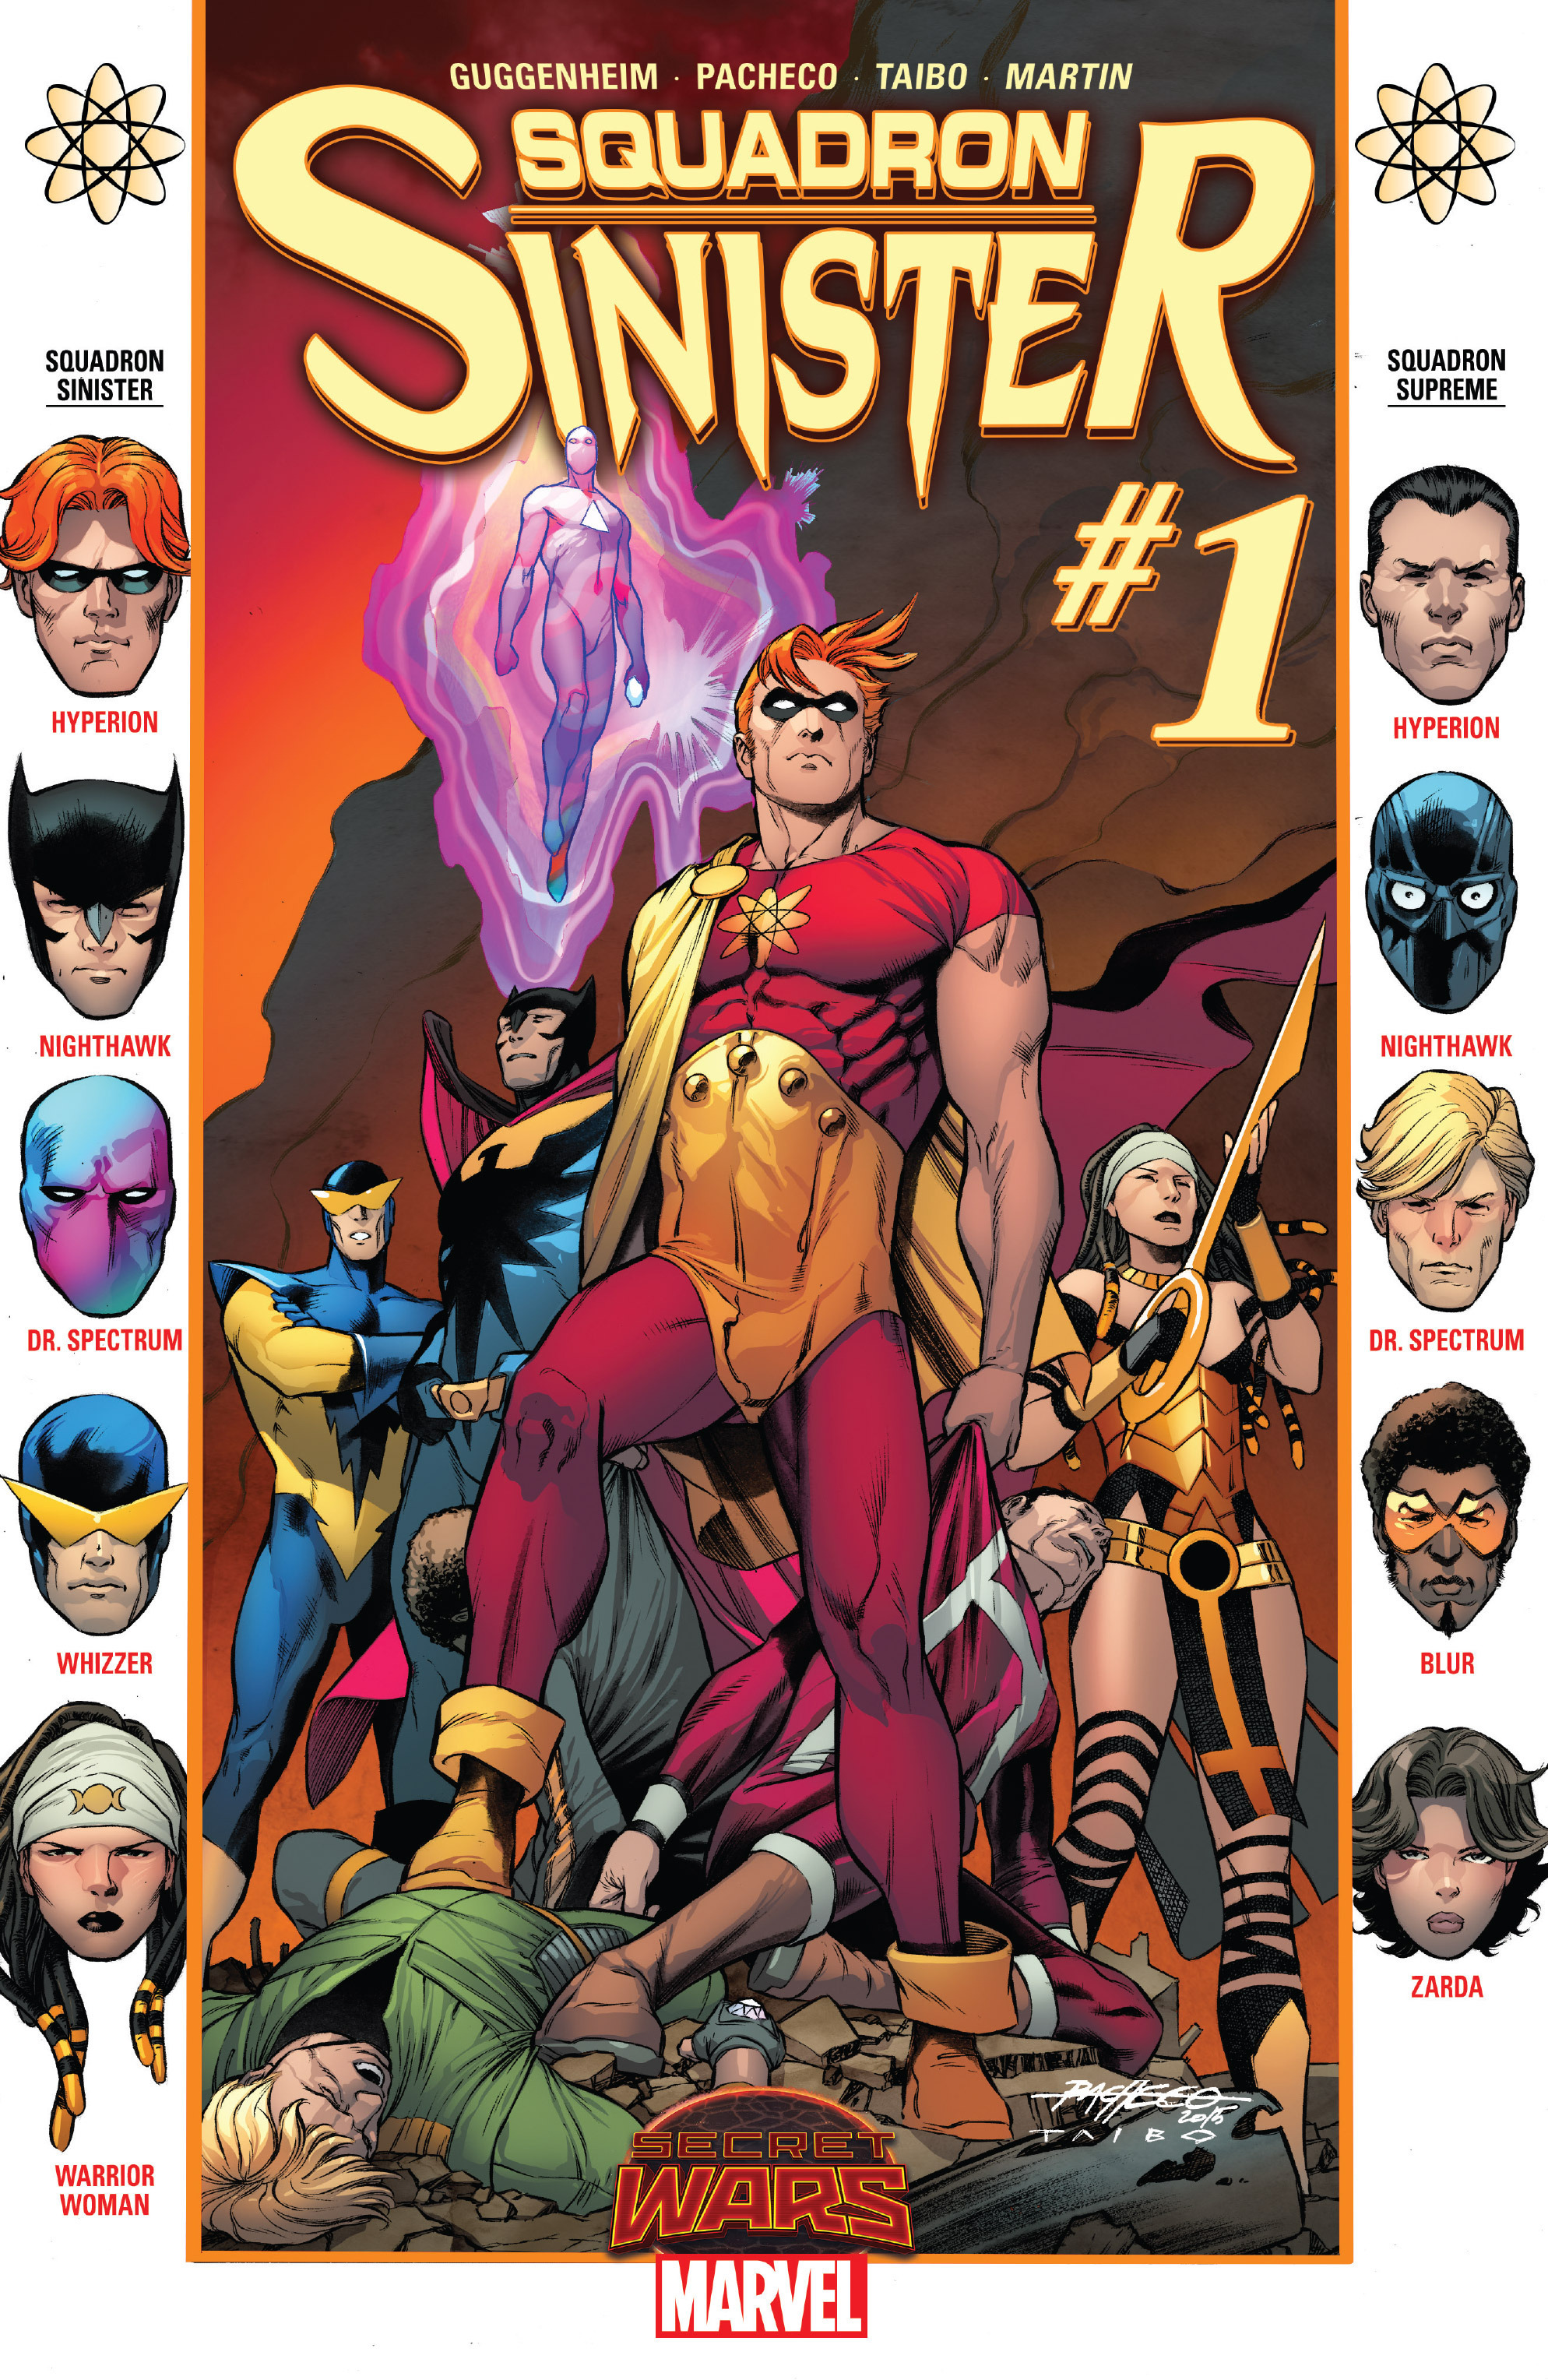 Squadron Sinister #1 Spoilers & Review: Rock Star Creative ...